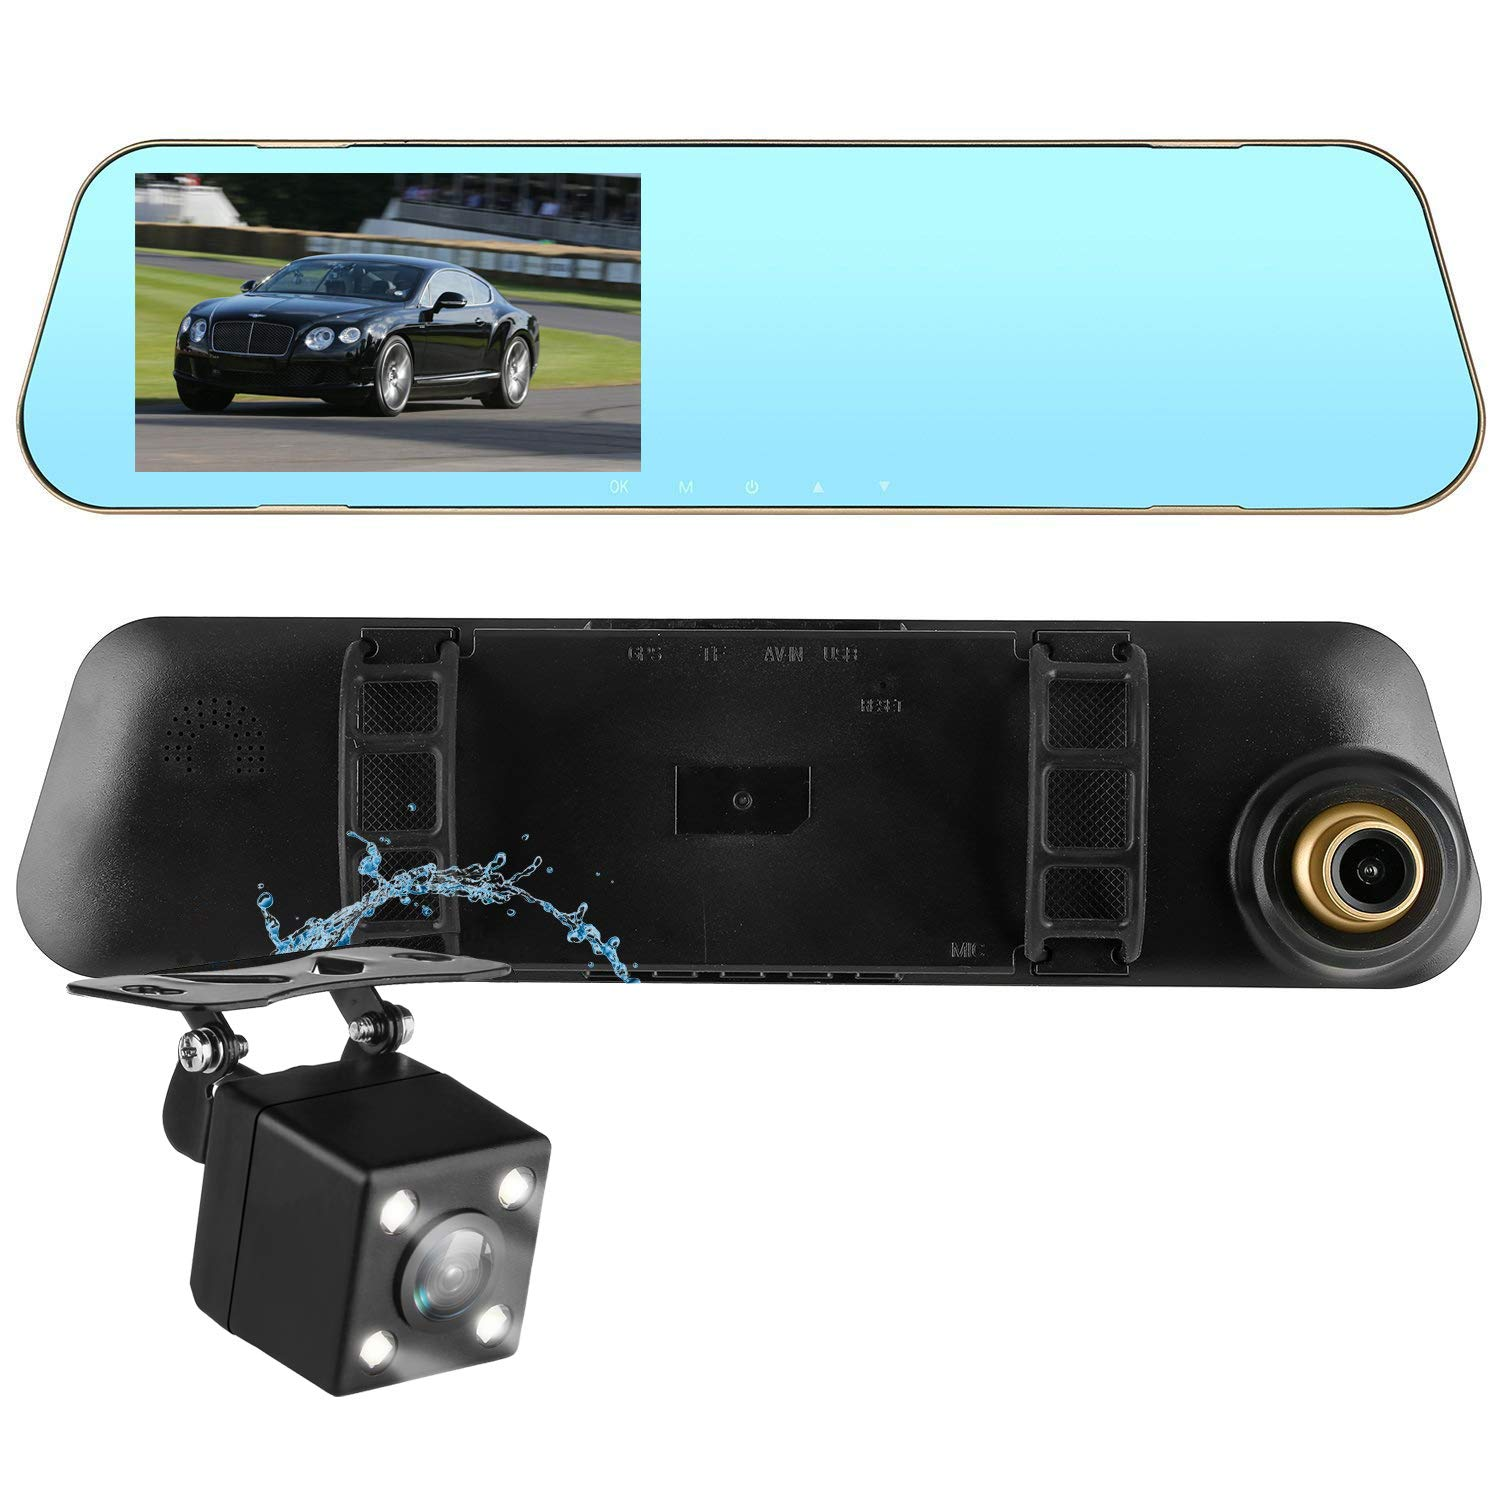 DohonesBest Dash Cam Dual Lens Rear View Mirror Car Backup Camera Front and Rear 1080P Full HD Video Recorder, Car DVR with G-Sensor Motion Detection Loop Recording Parking Mode 4.3''140° Wide View